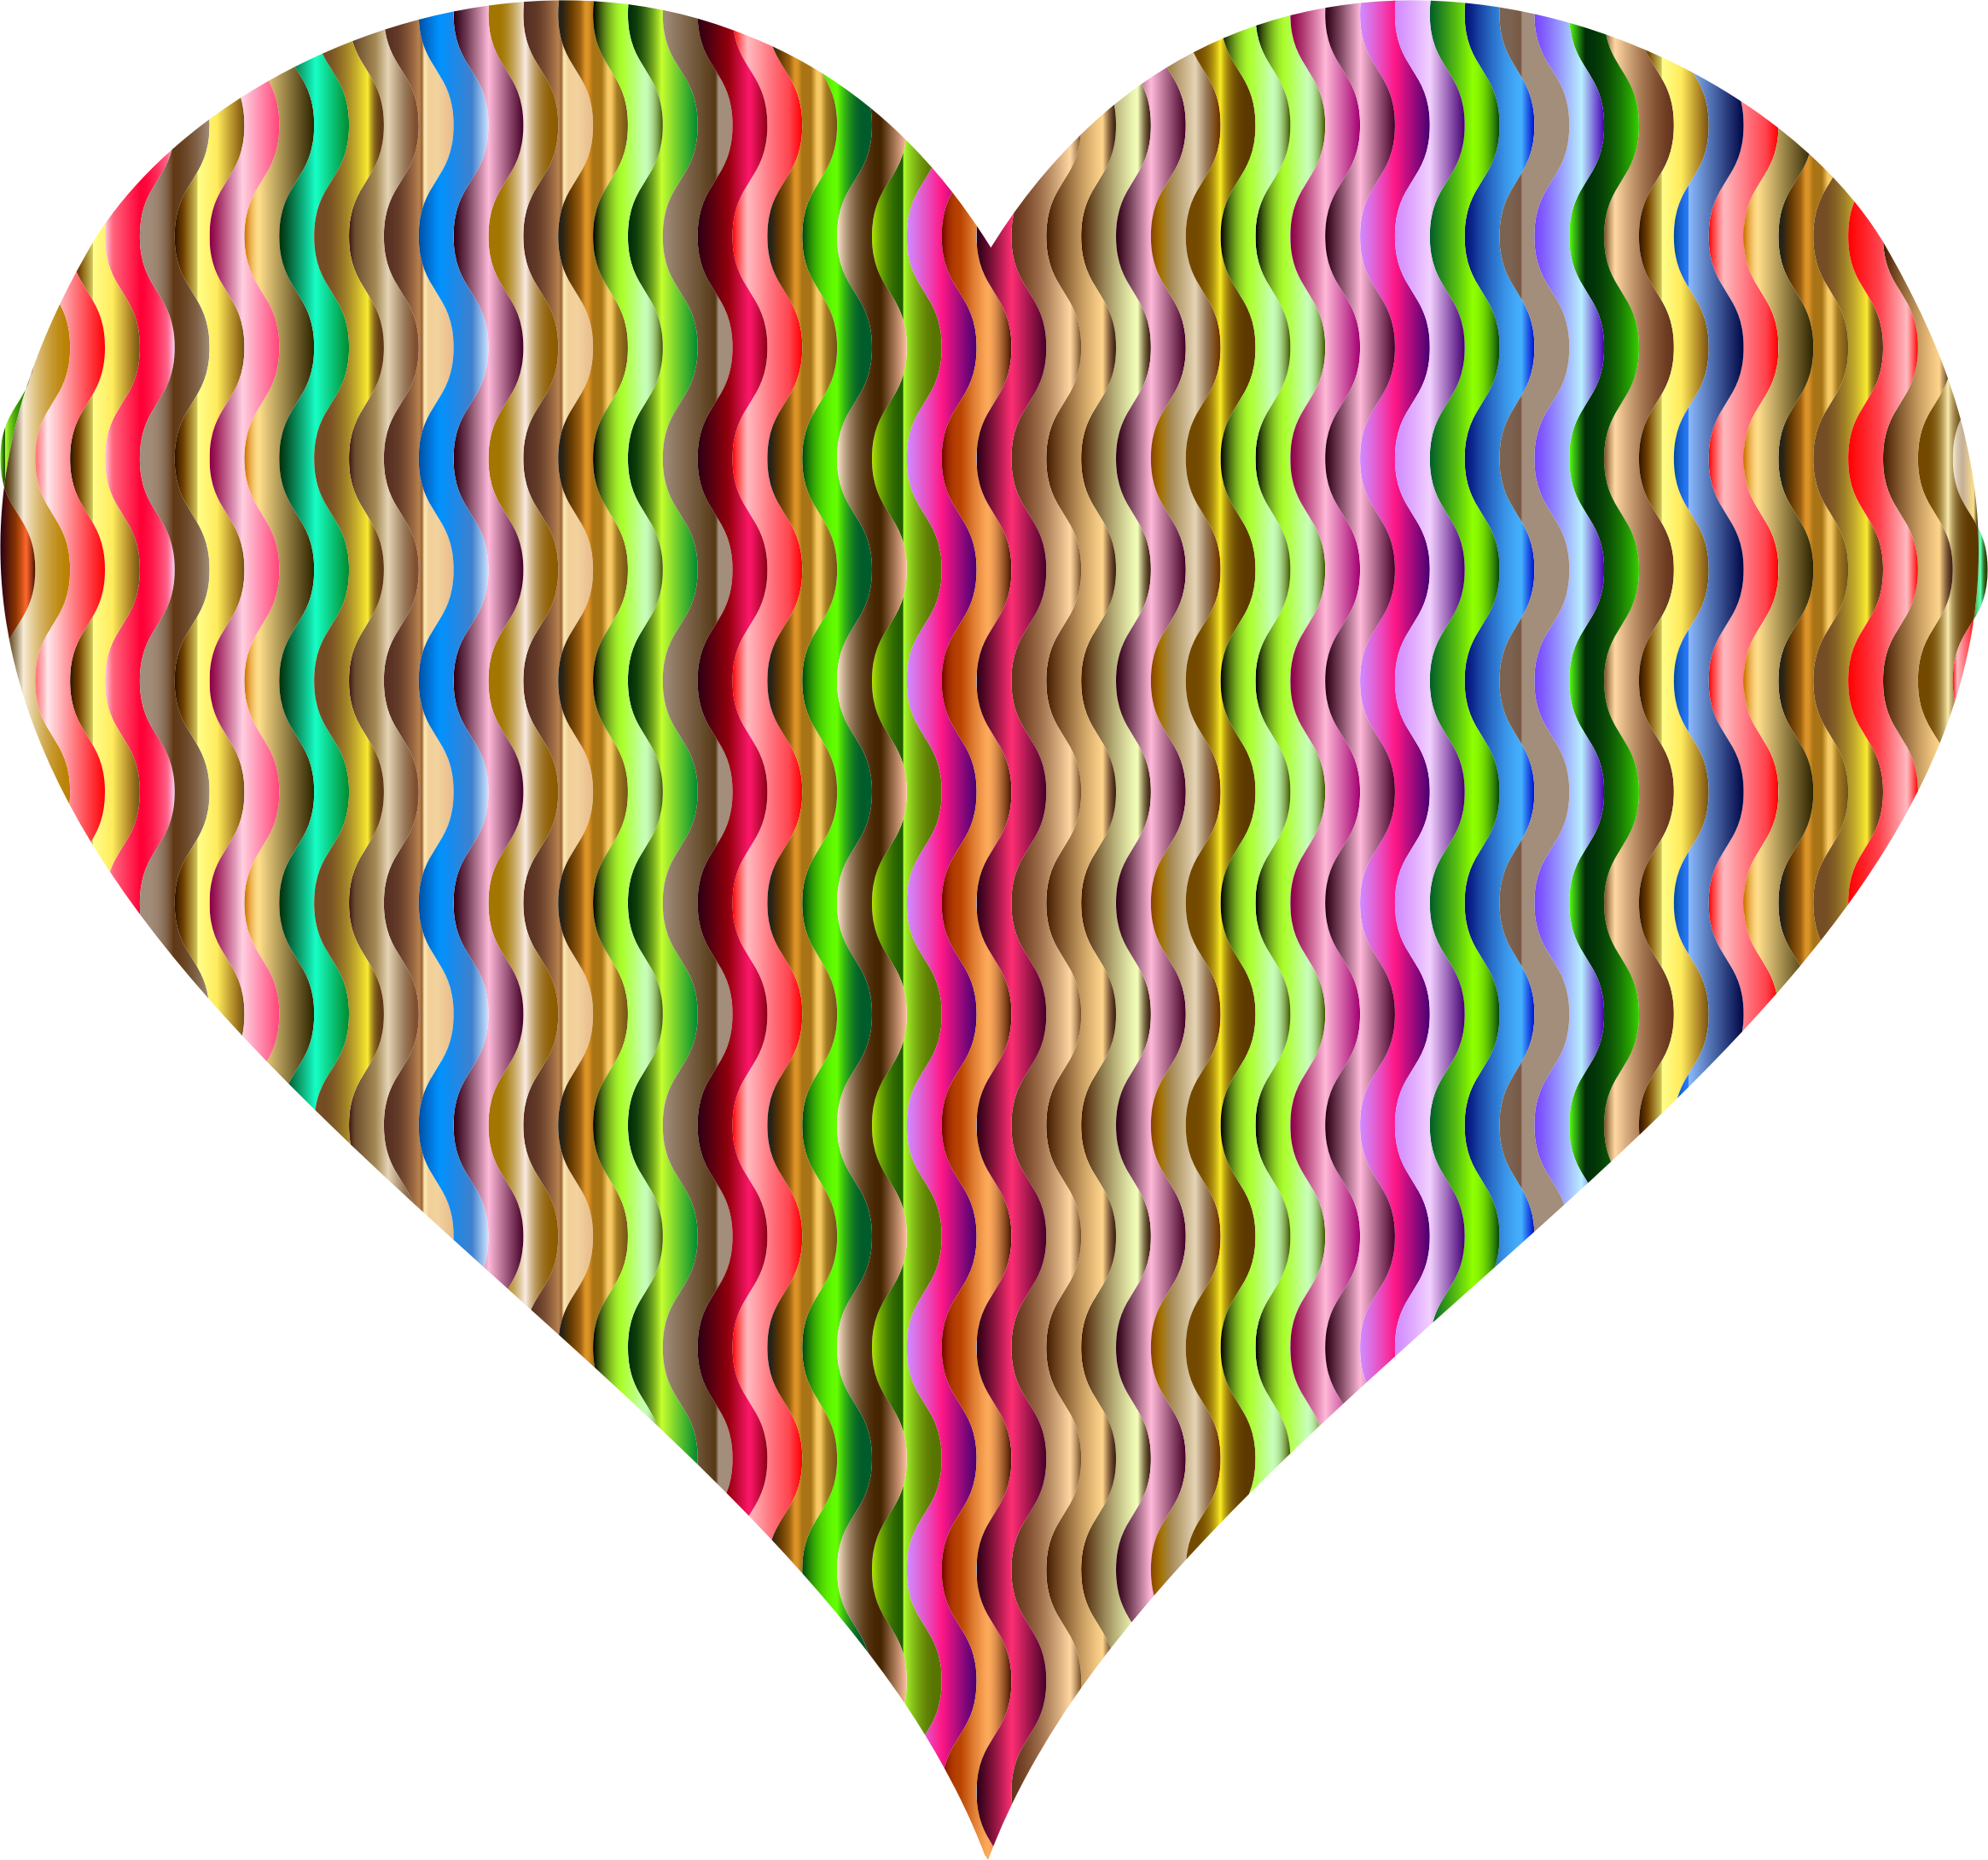 Colorful Wavy Heart 3 by GDJ